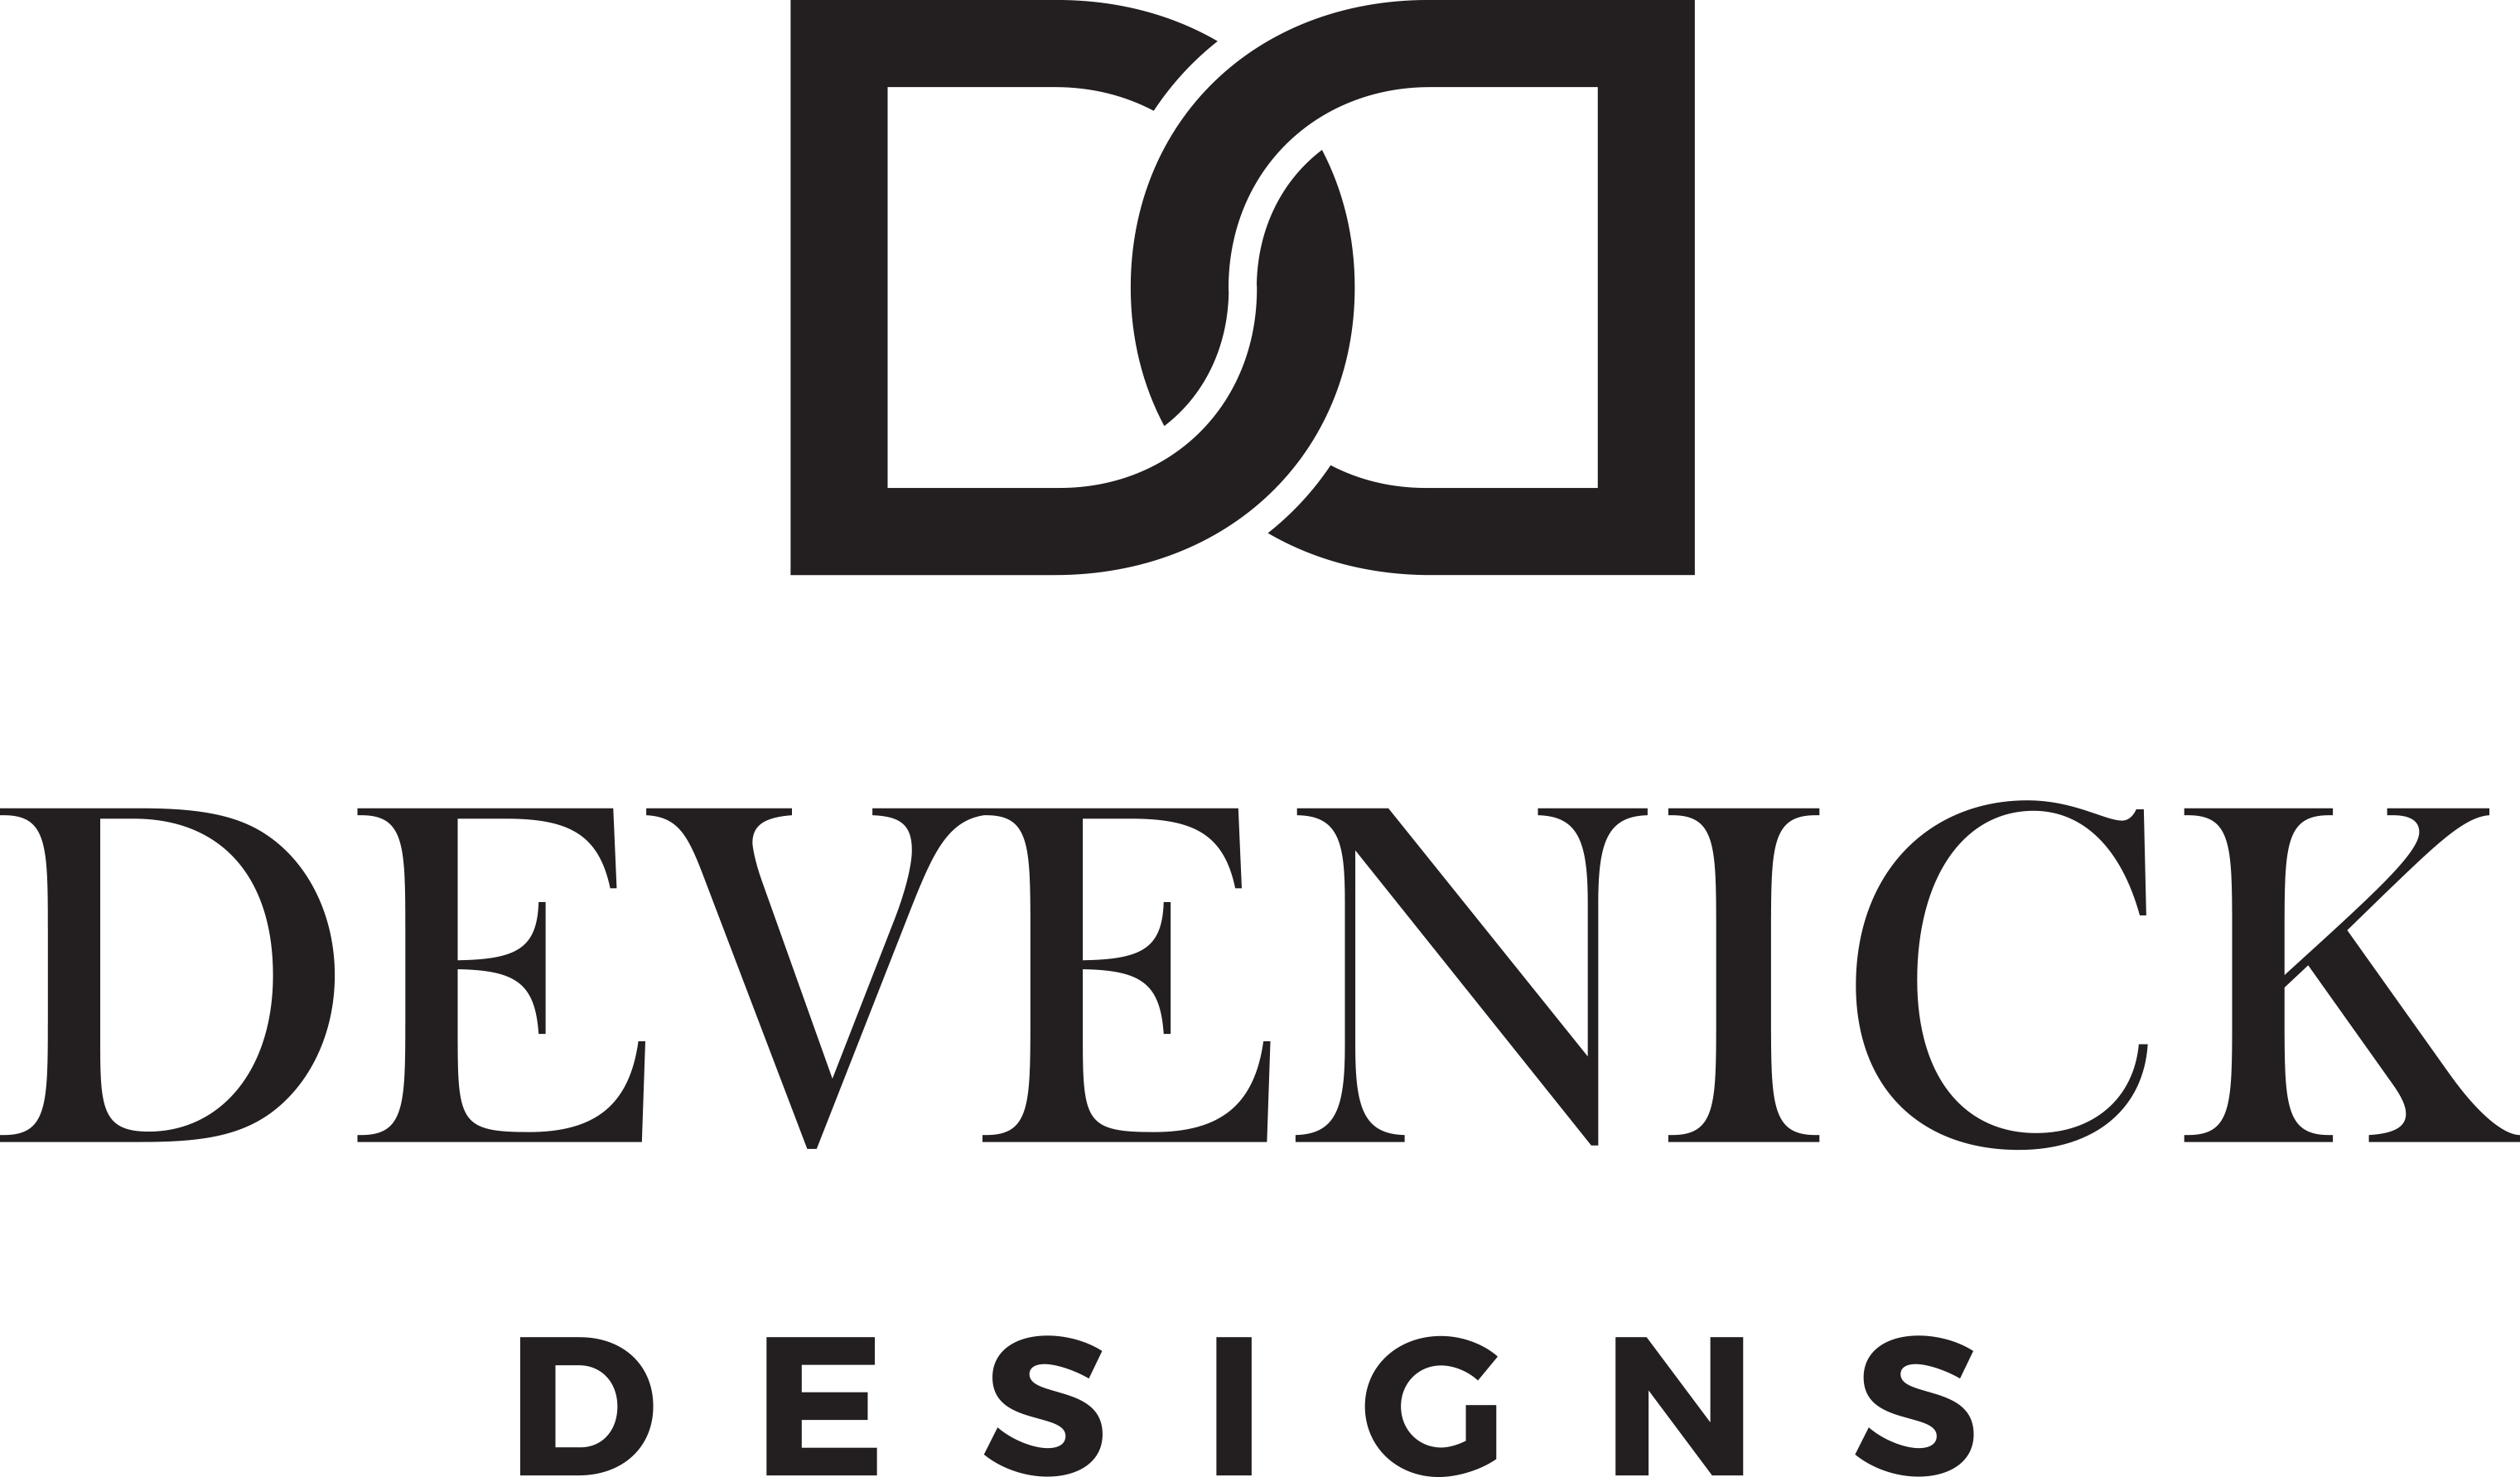 Devenick Designs